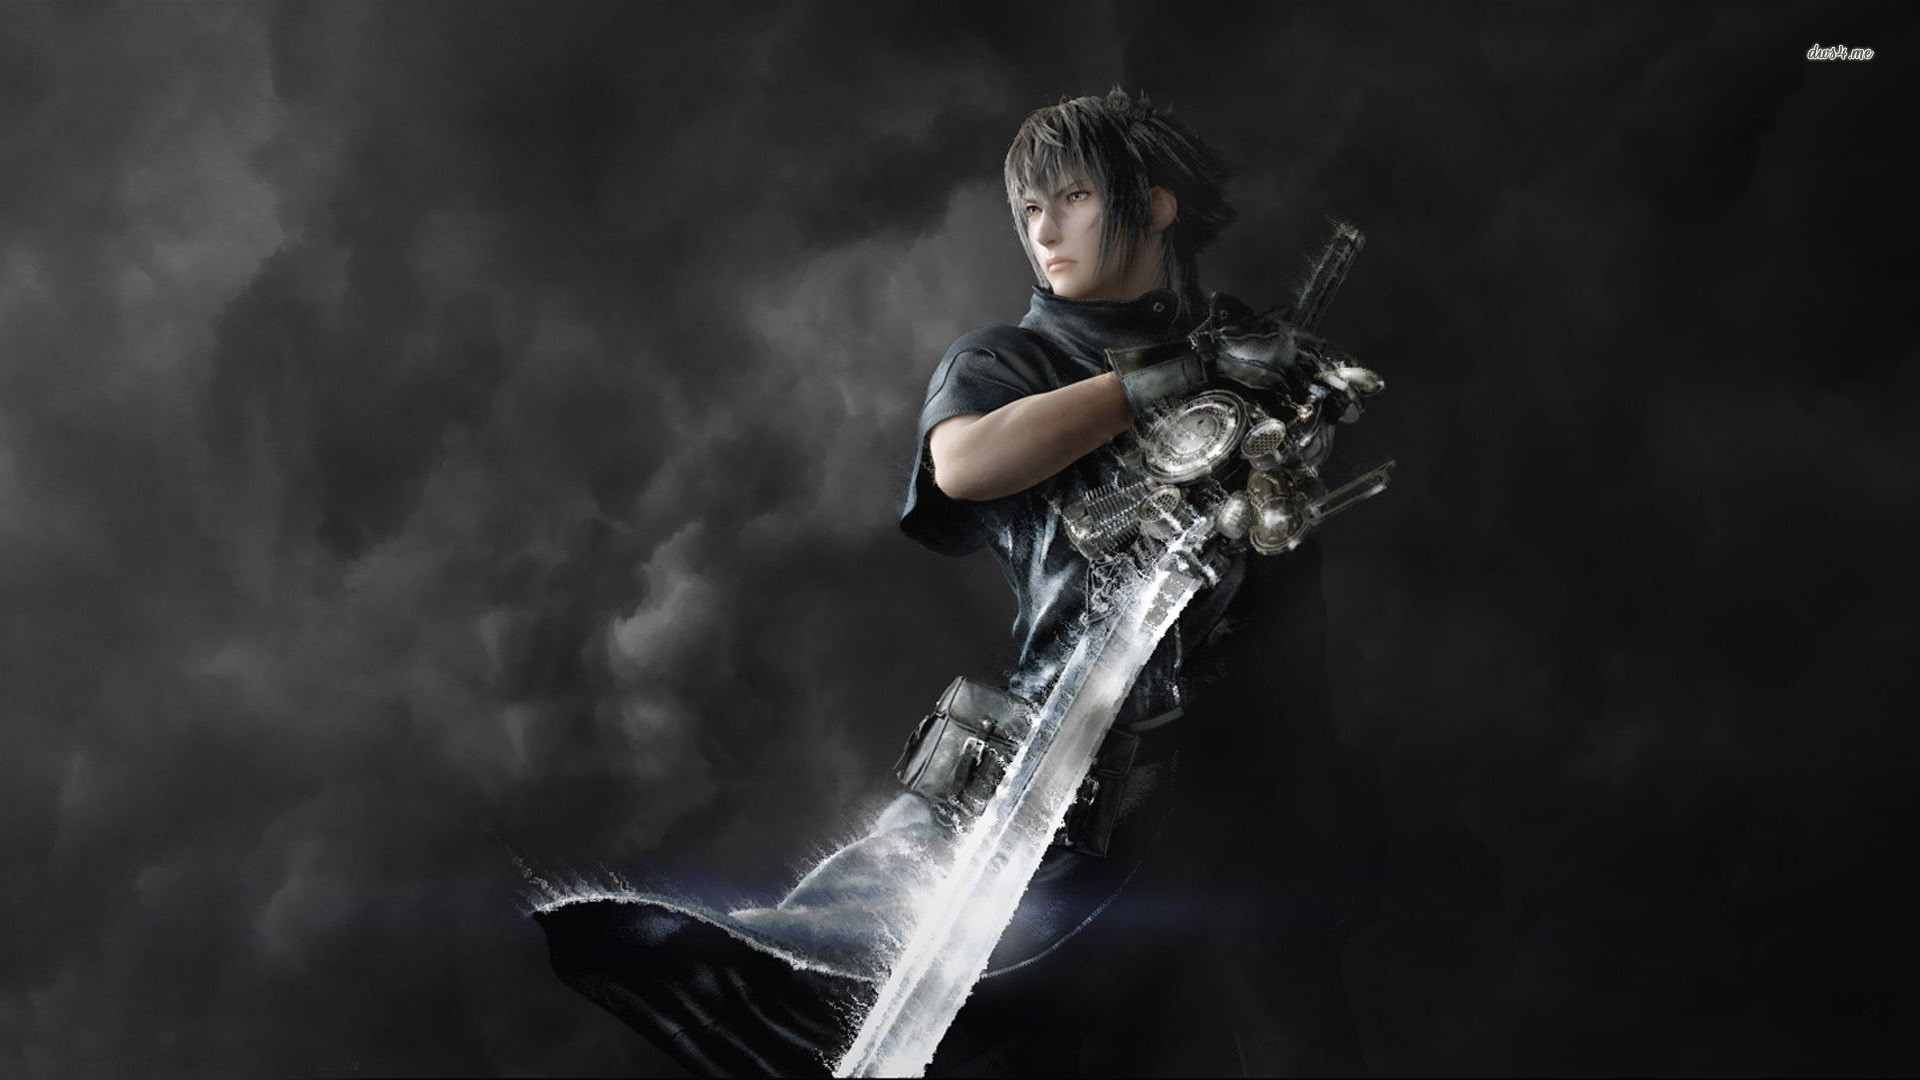 117 Final Fantasy Xv Hd Wallpapers: Final Fantasy HD Wallpapers (79+ Images